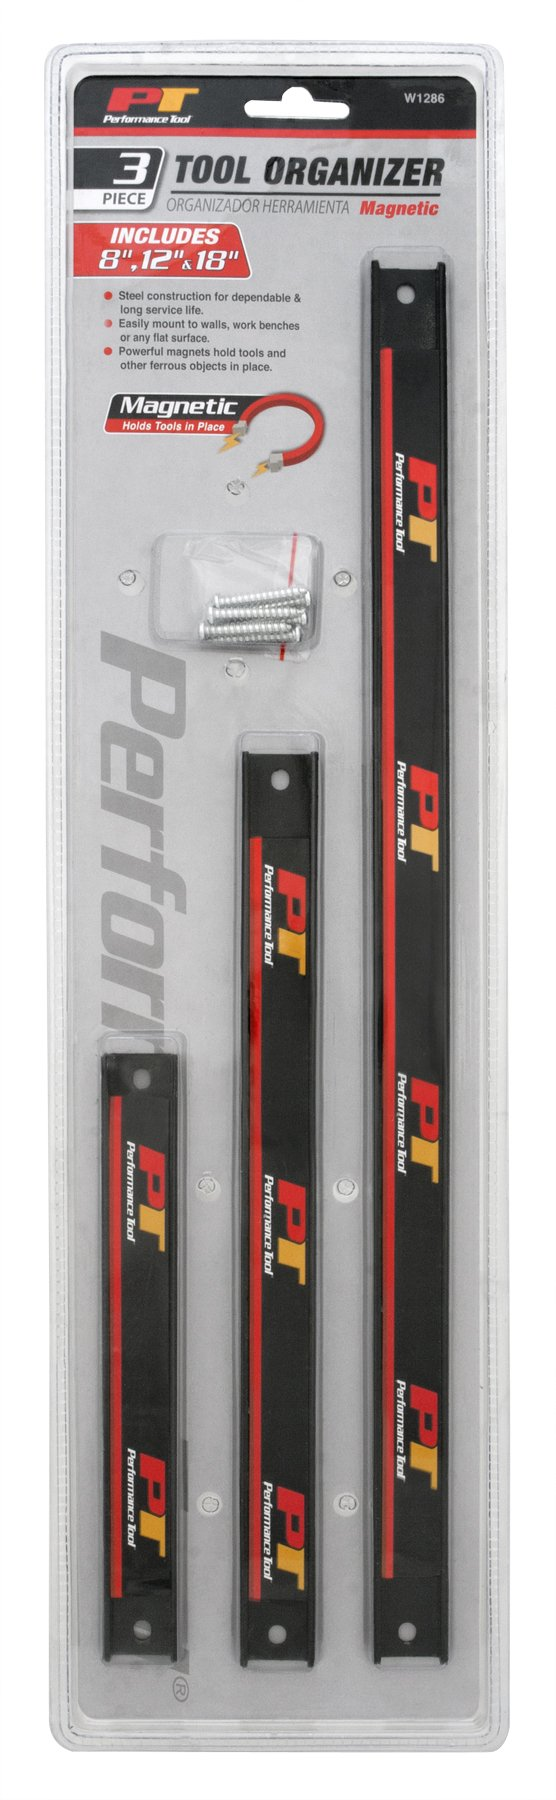 Performance Tool W1286 3 Piece Magnetic Tool Organizer